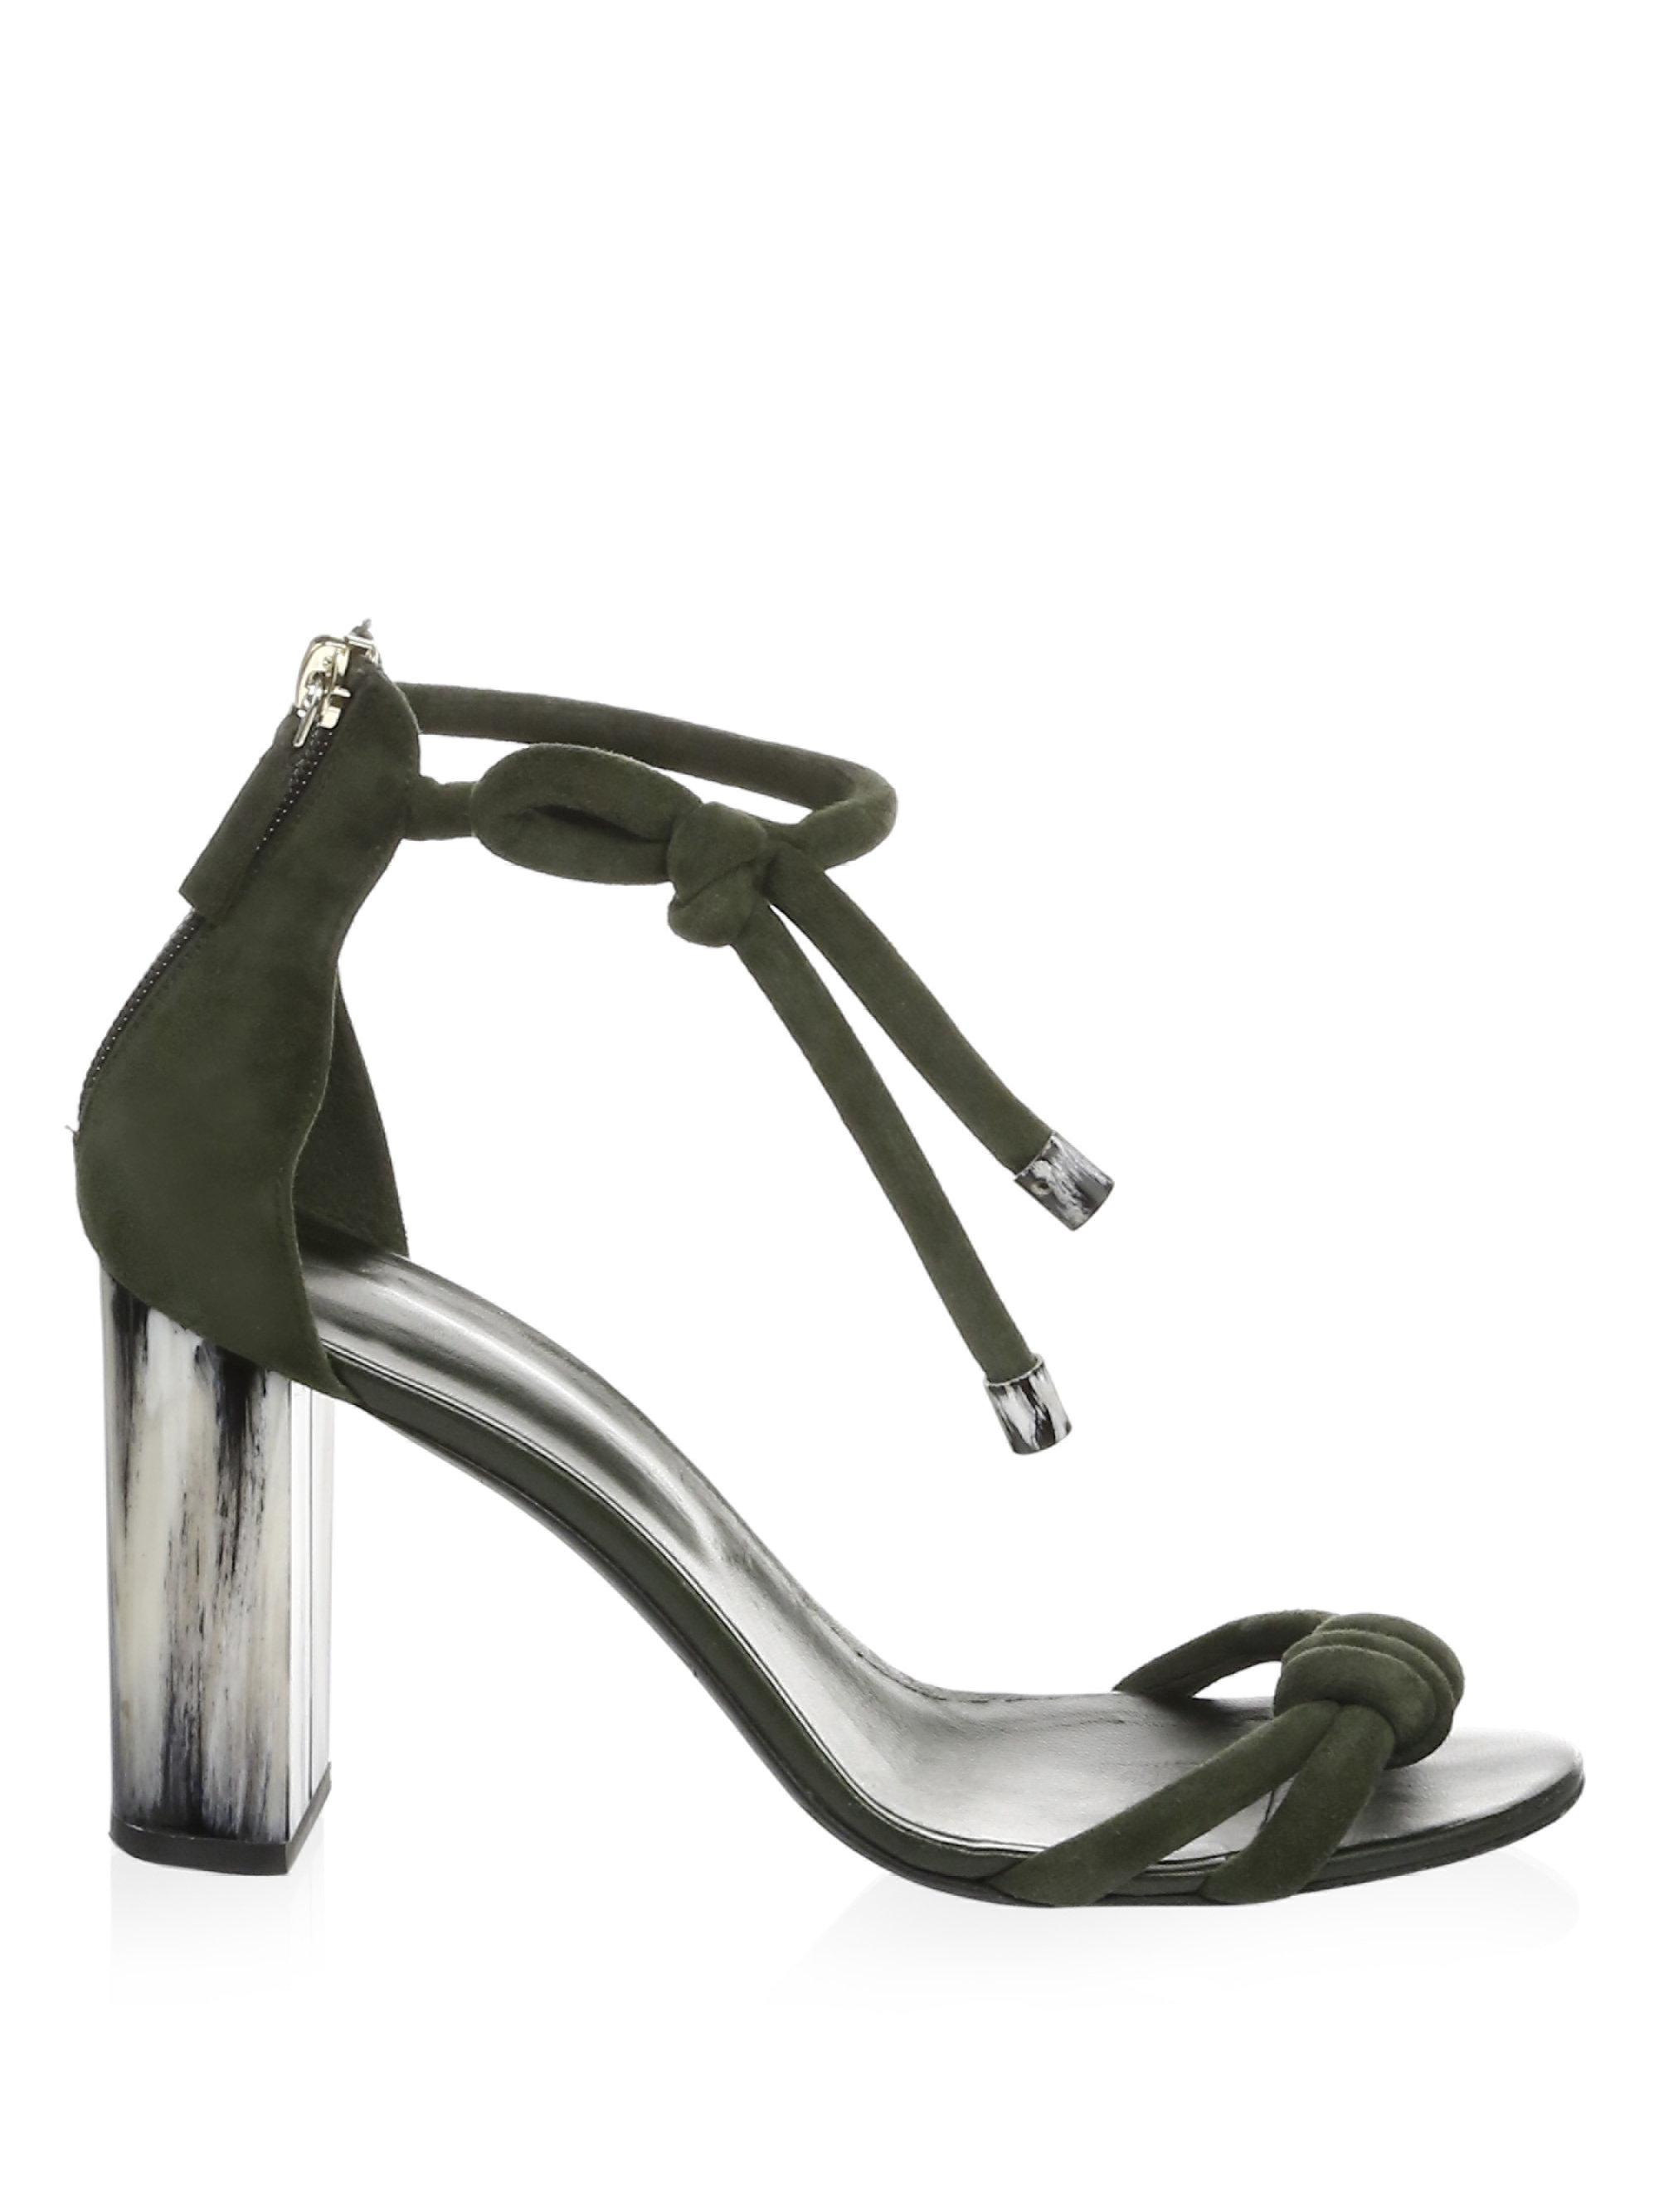 Oscar de la Renta Leather Ankle-Strap Sandals kX6N9DvC